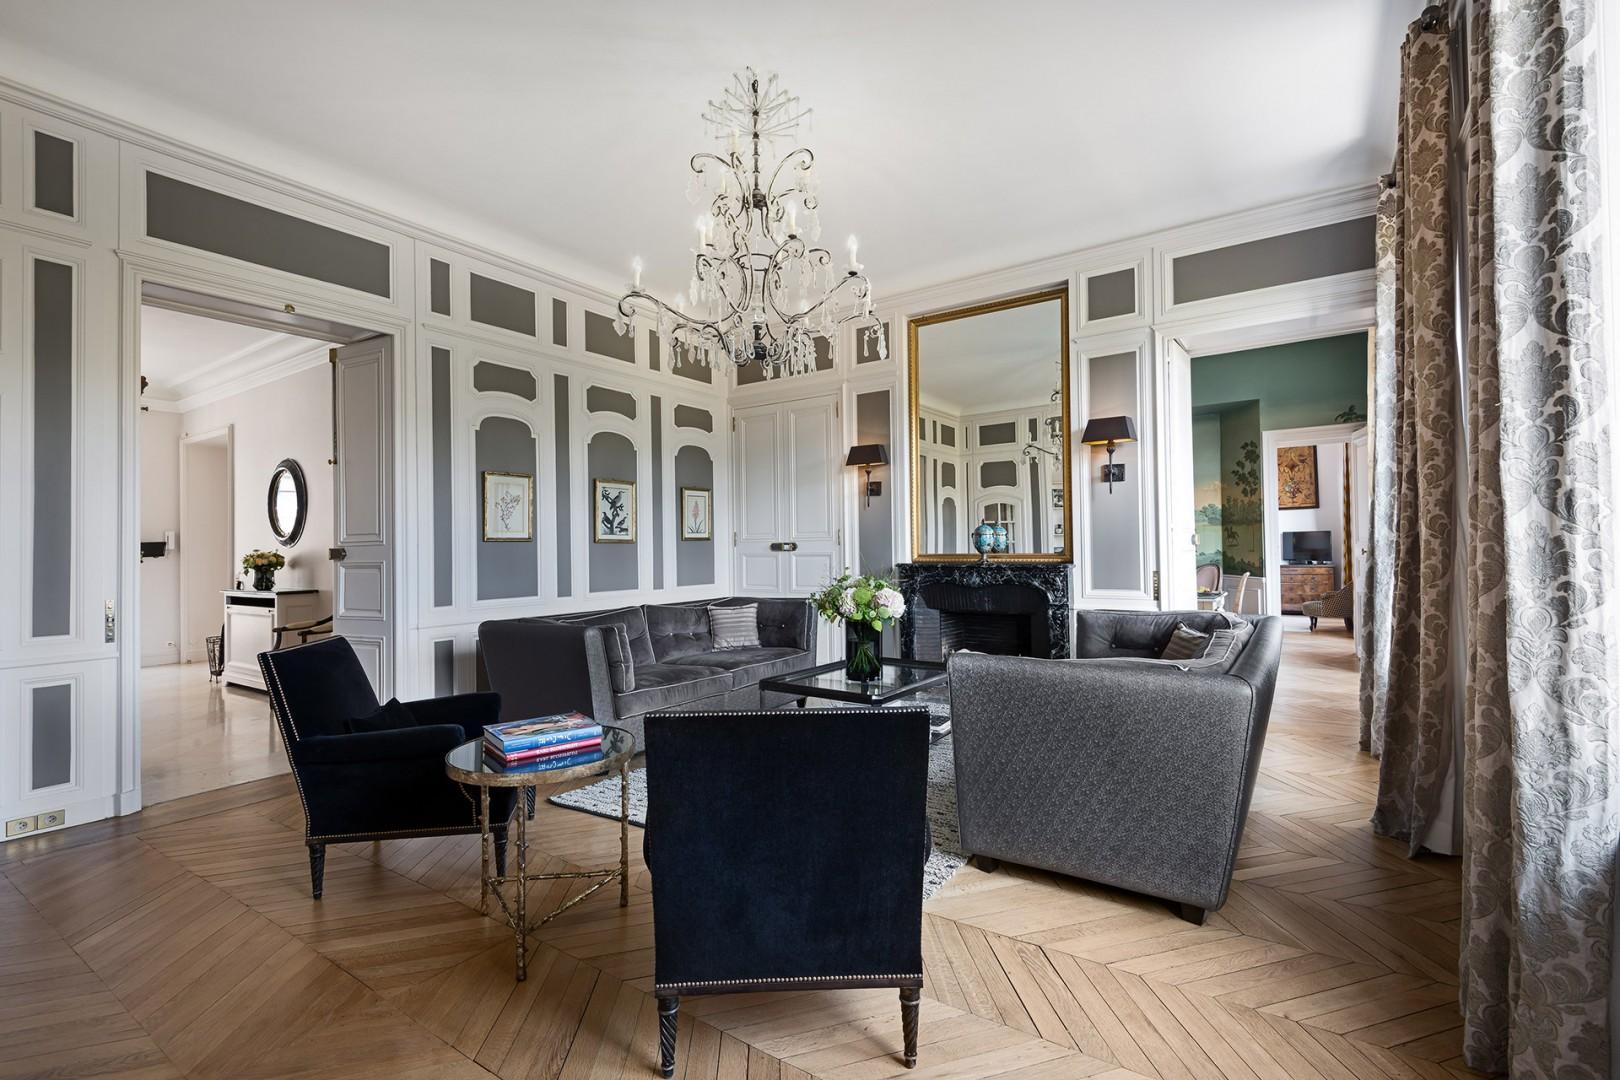 The elegant interior perfectly reflects the grandeur of its palatial setting.